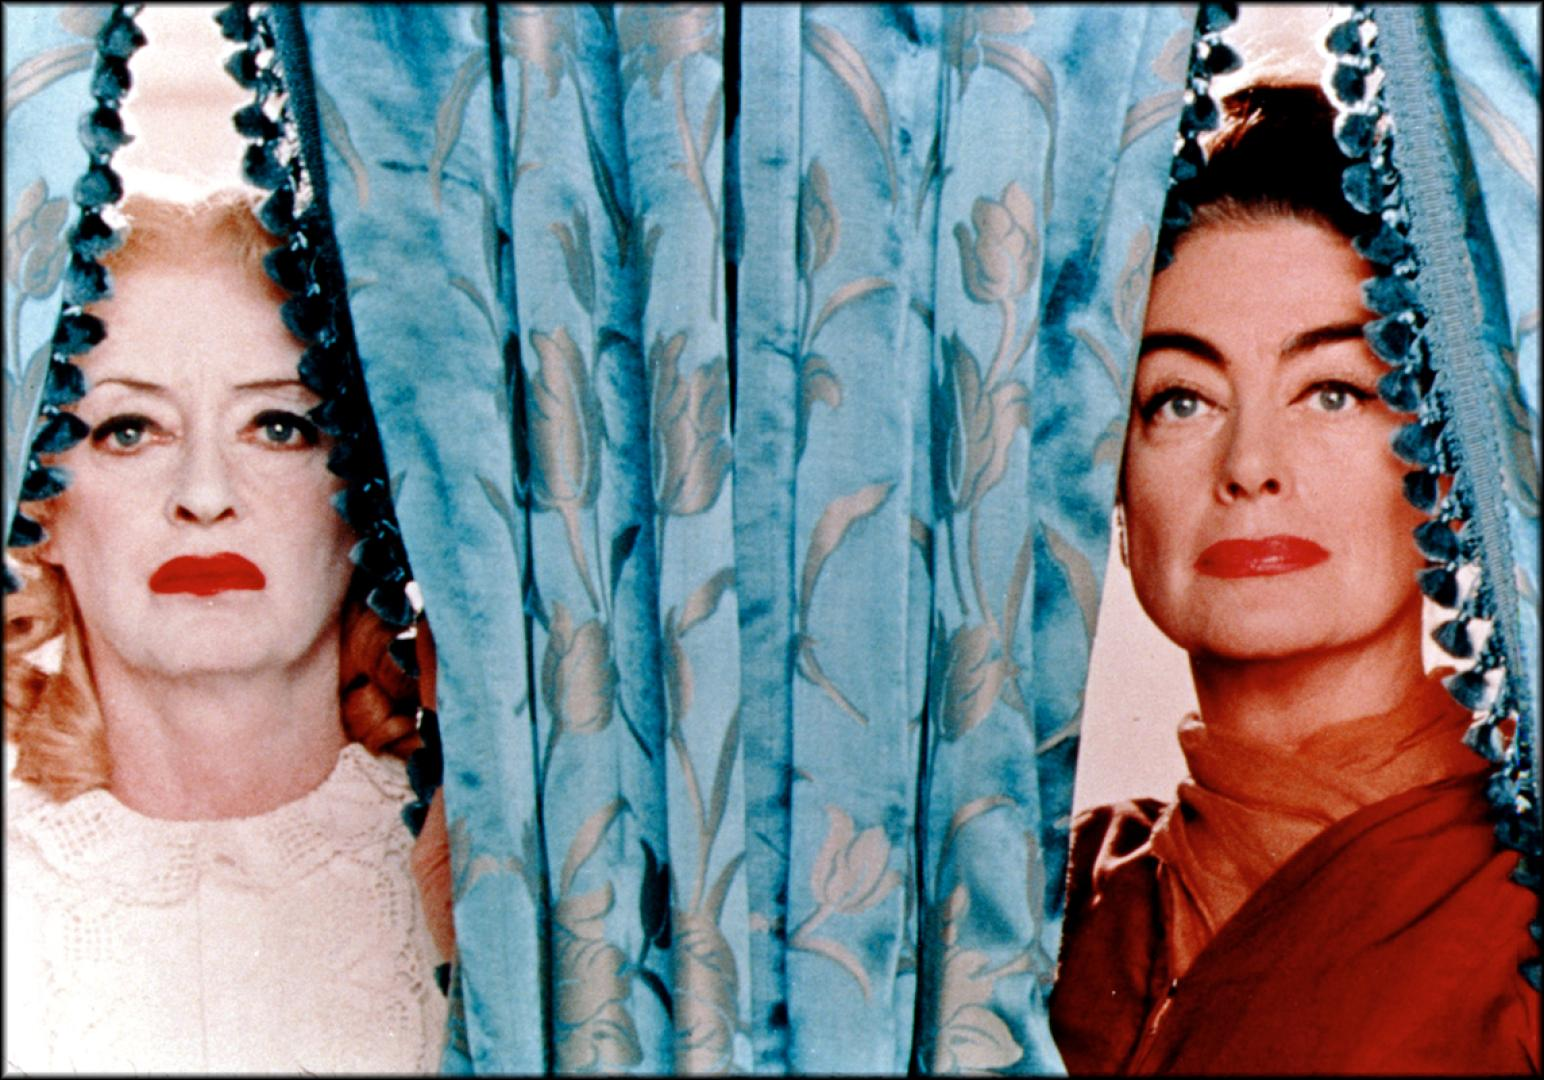 What Ever Happened to Baby Jane? - Mi történt Baby Jane-nel? (1962/1991)